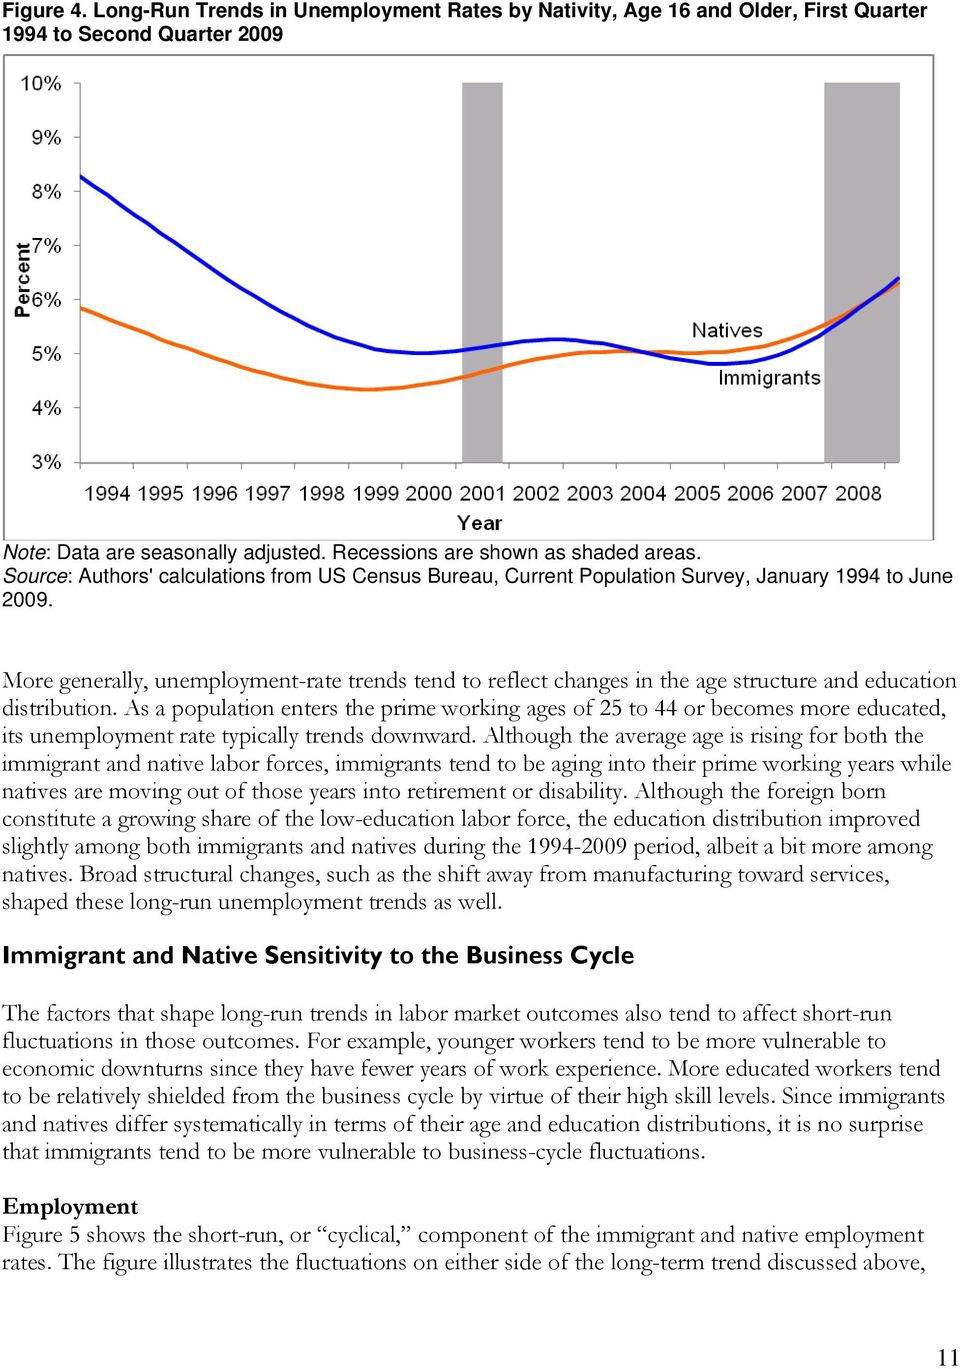 More generally, unemployment-rate trends tend to reflect changes in the age structure and education distribution.